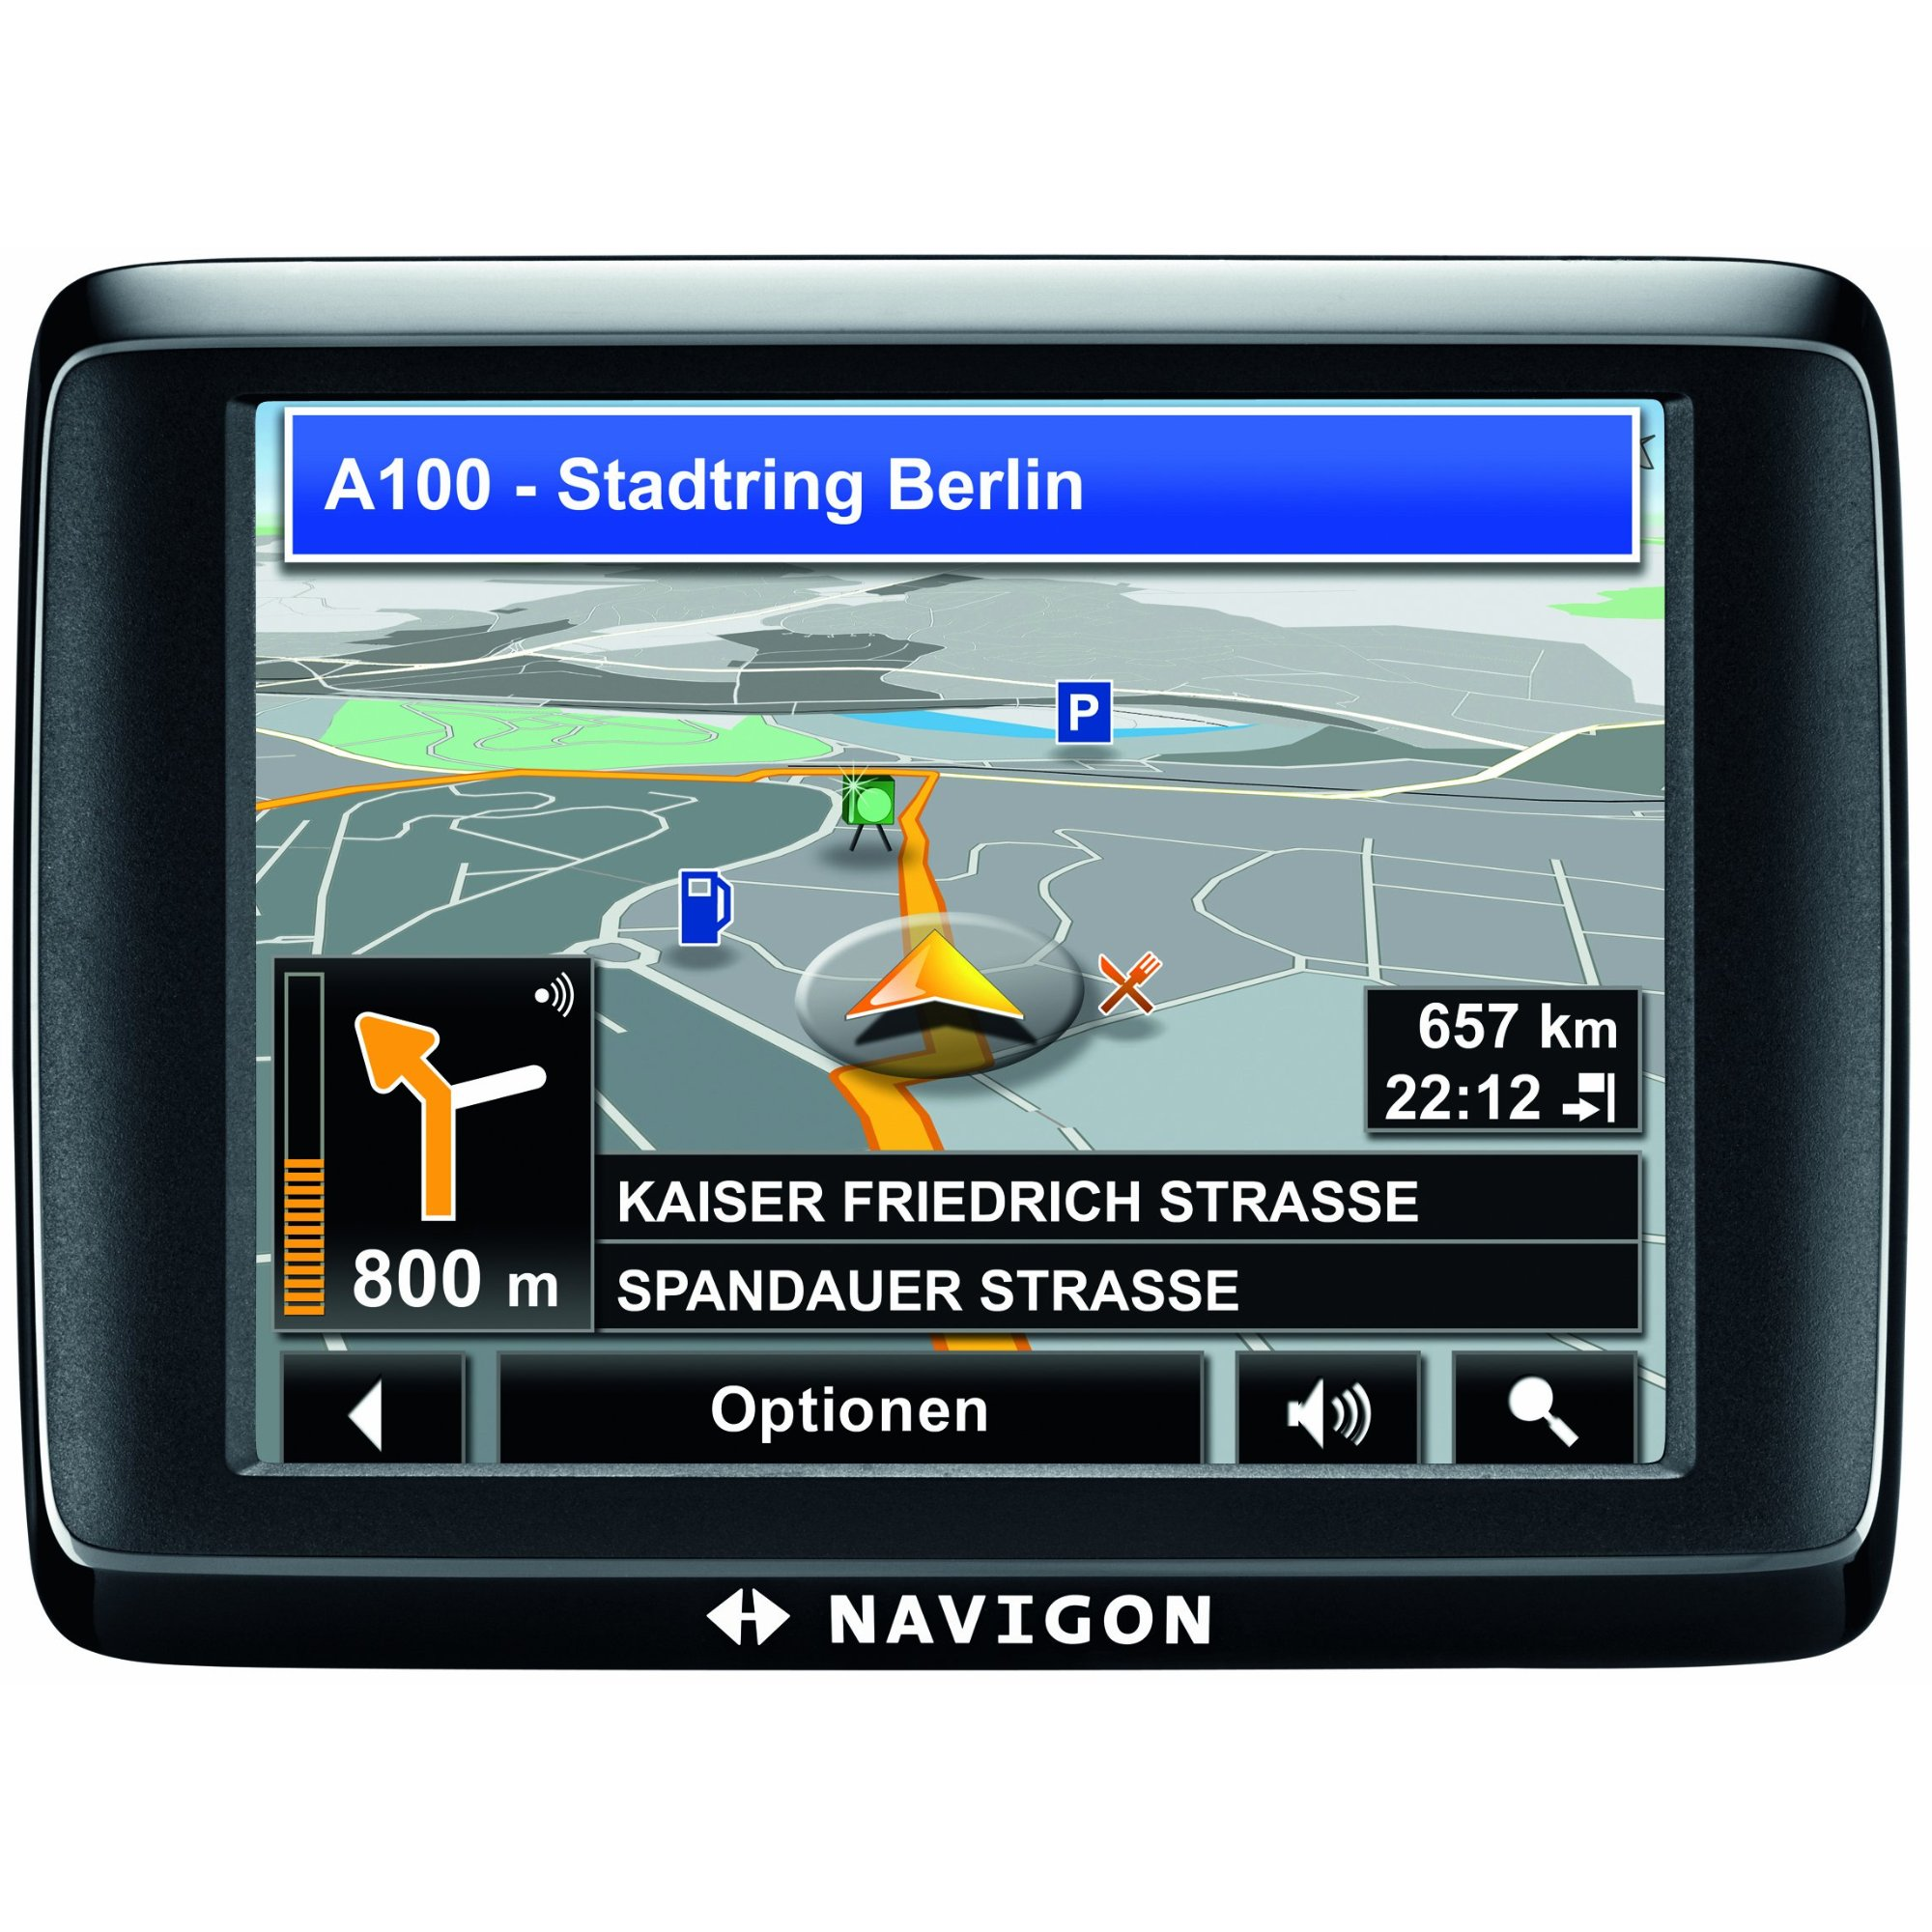 navigon 1400 uk roi gps sat nav satellite navigation ebay. Black Bedroom Furniture Sets. Home Design Ideas